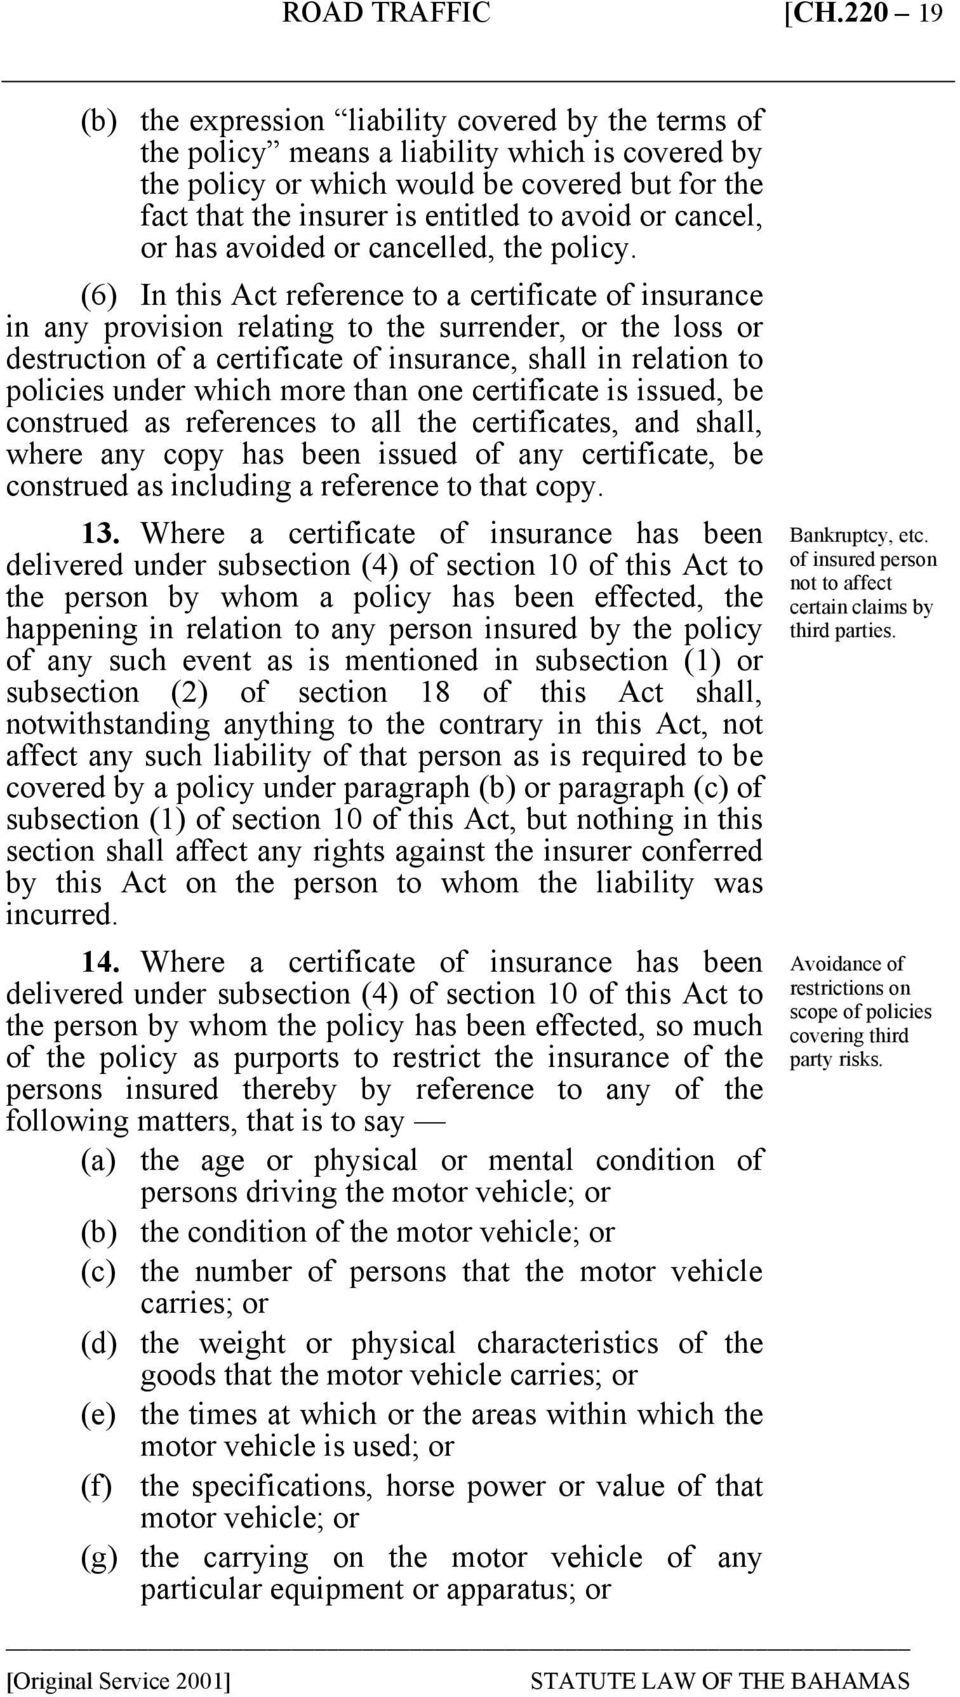 (6) In this Act reference to a certificate of insurance in any provision relating to the surrender, or the loss or destruction of a certificate of insurance, shall in relation to policies under which